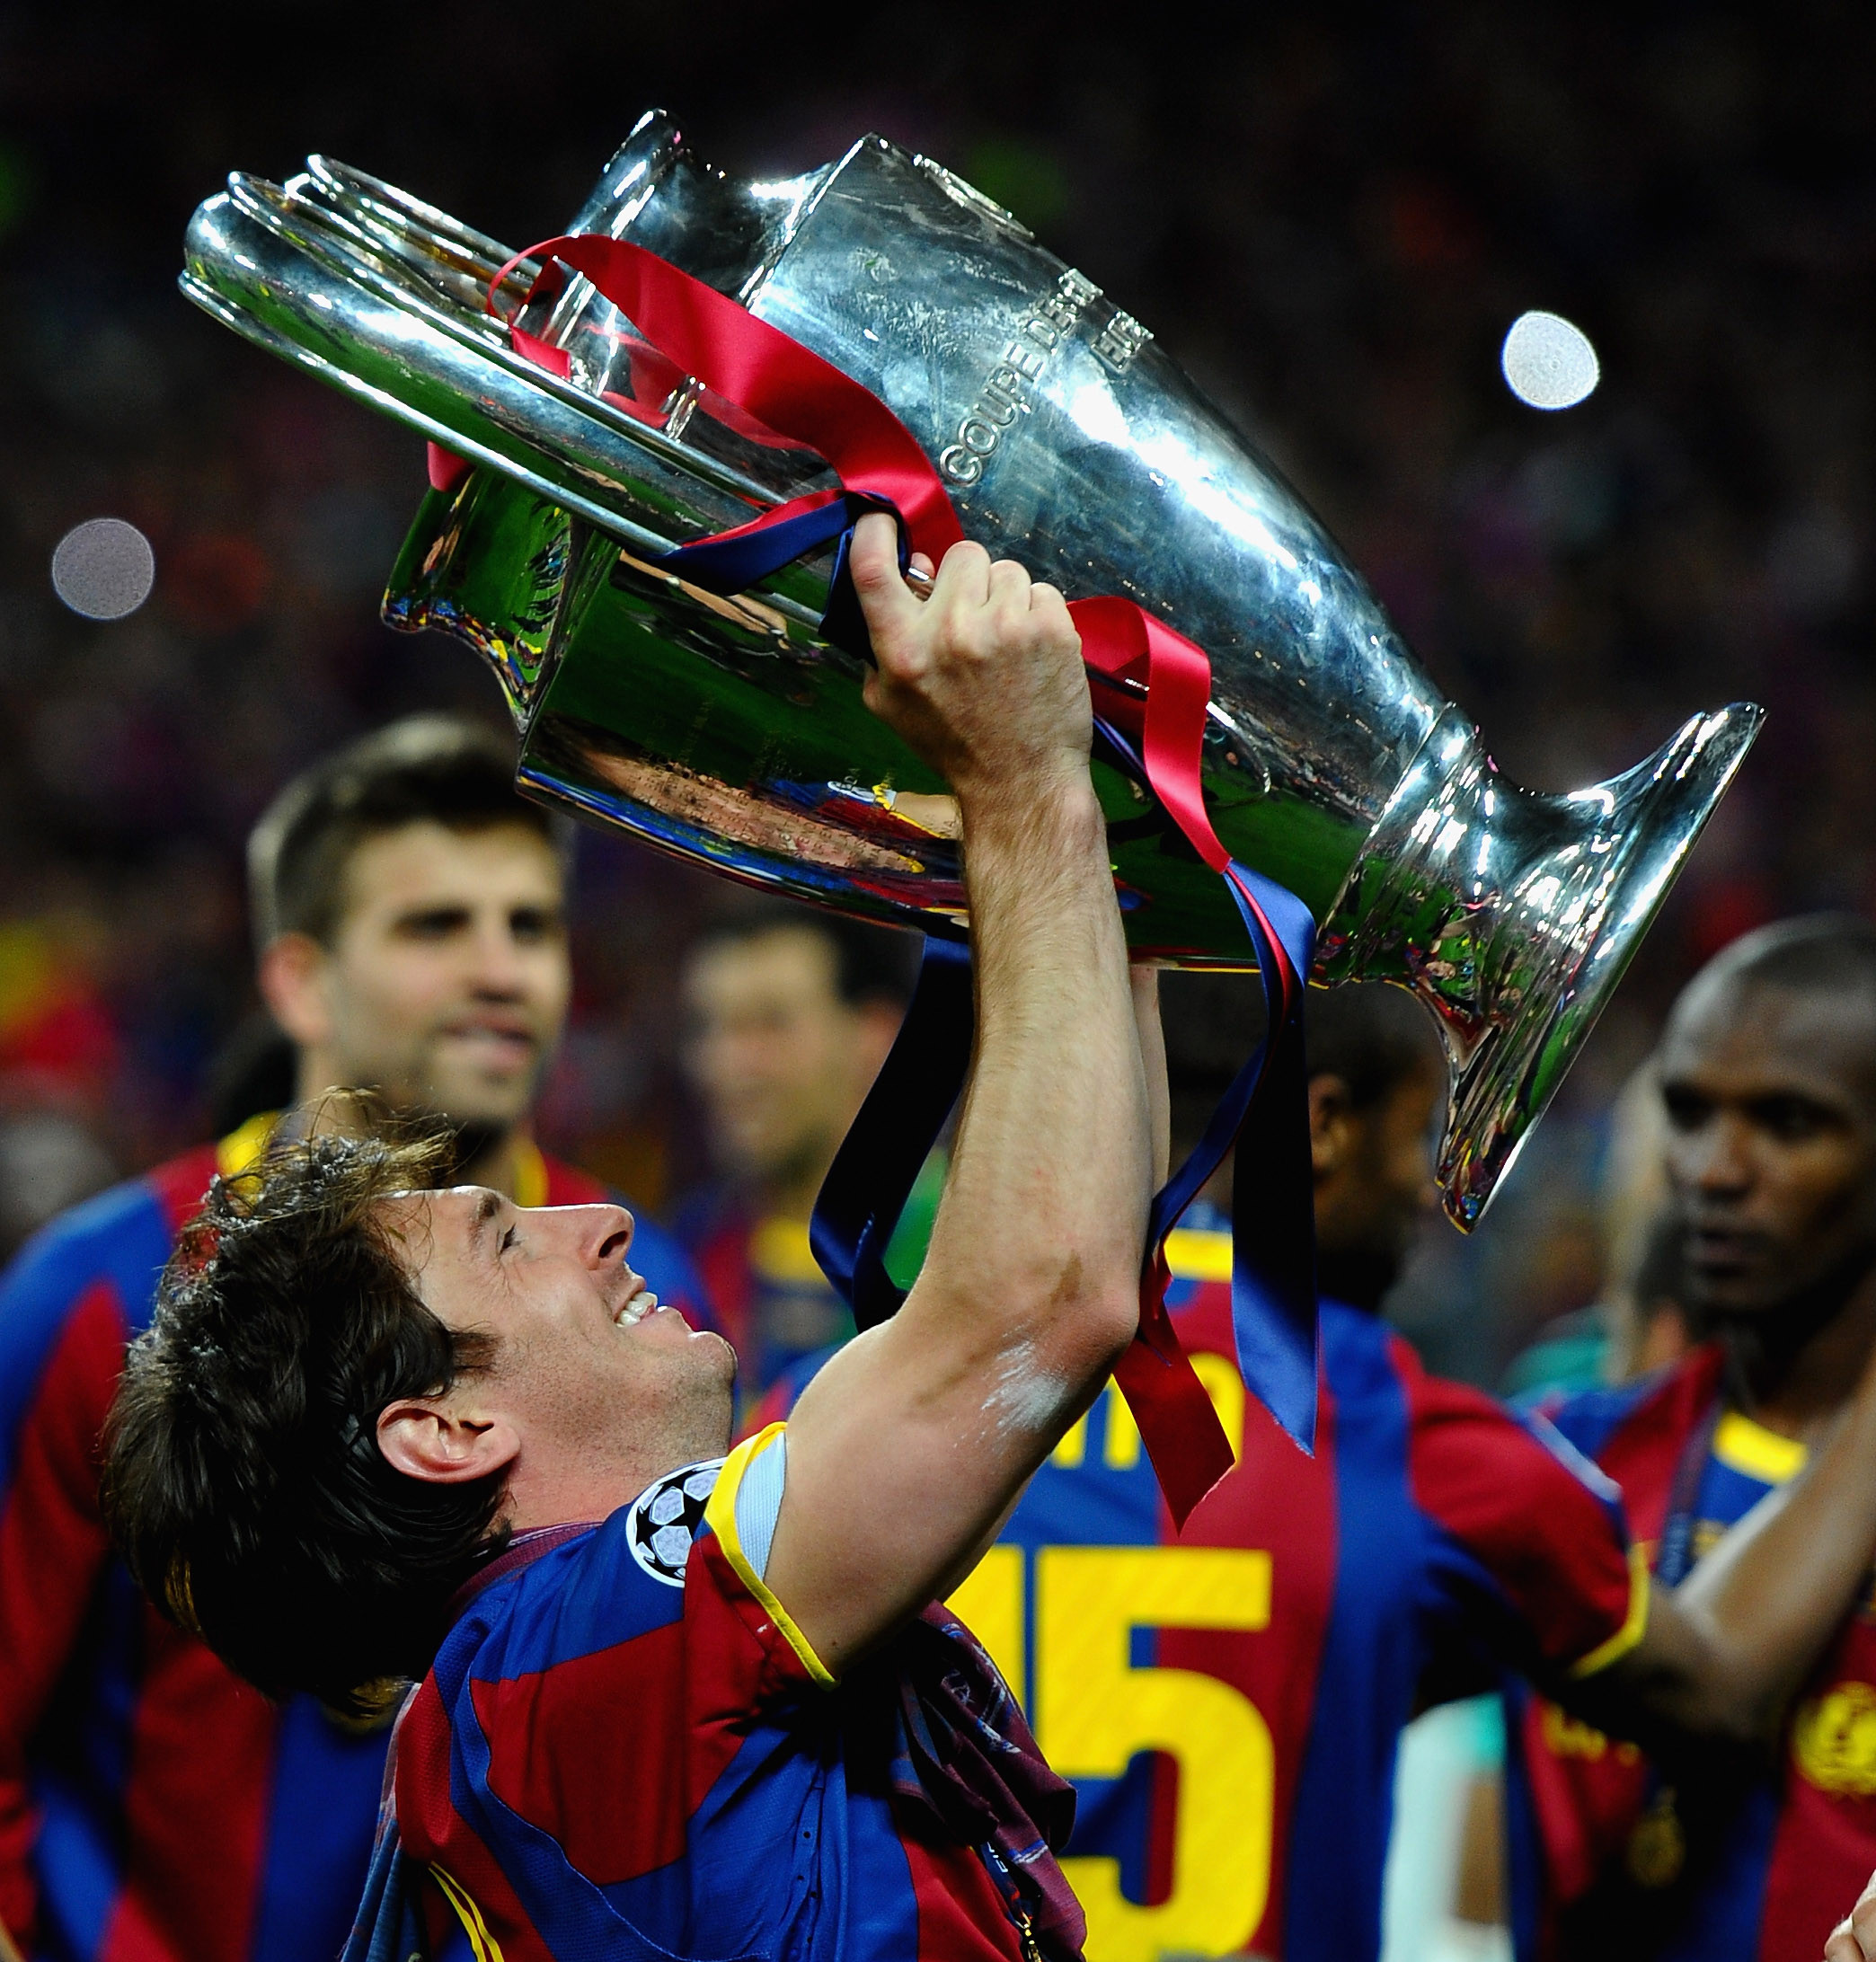 Lionel Messi has won four Champions League titles with Barcelona